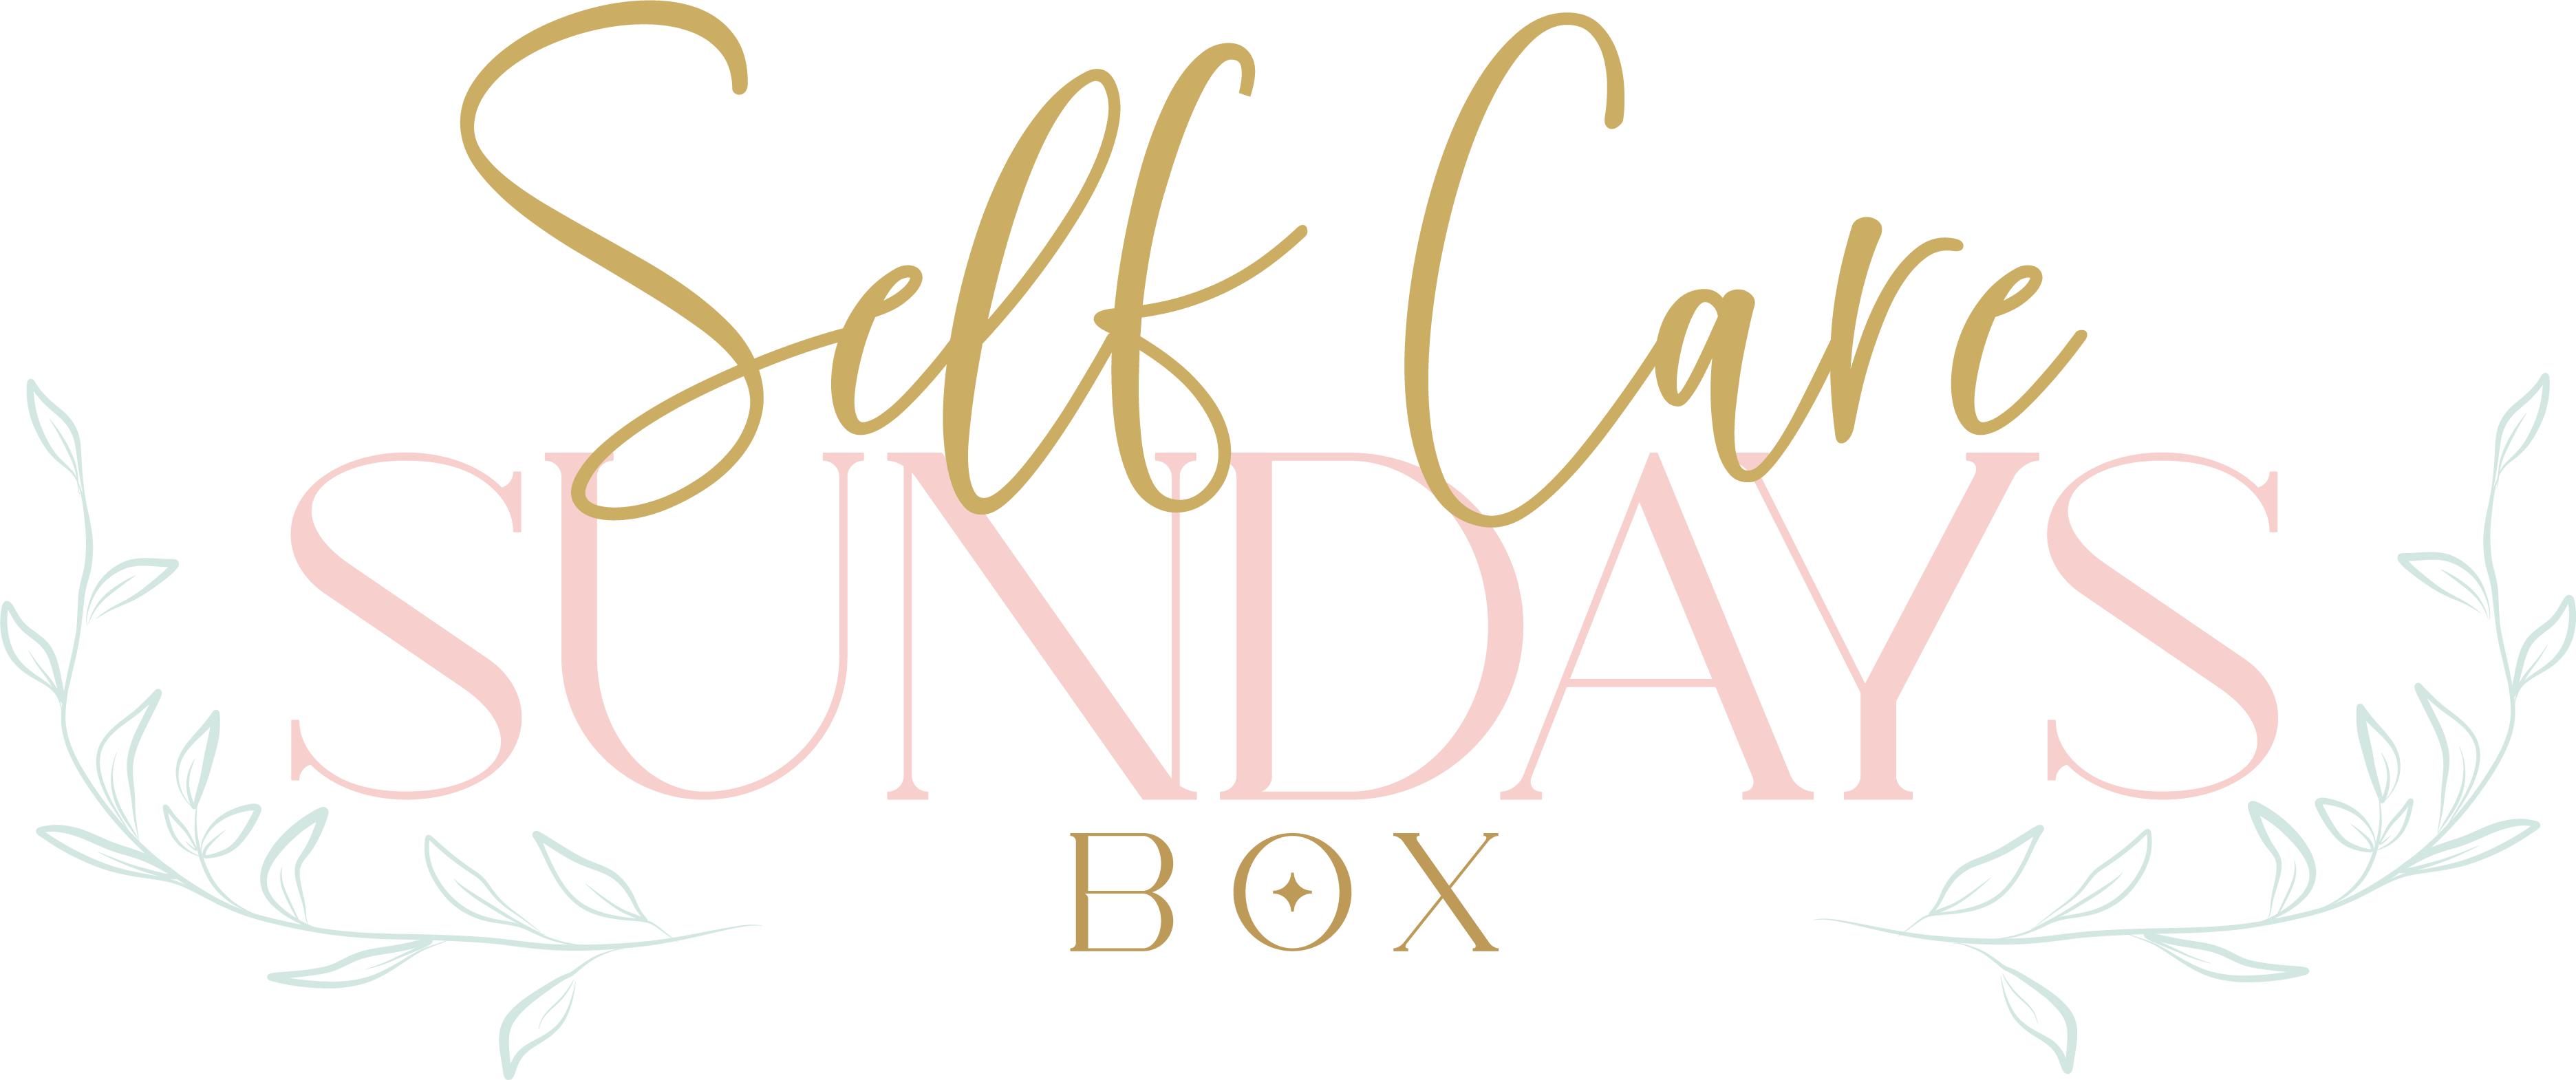 Self Care Sundays Box